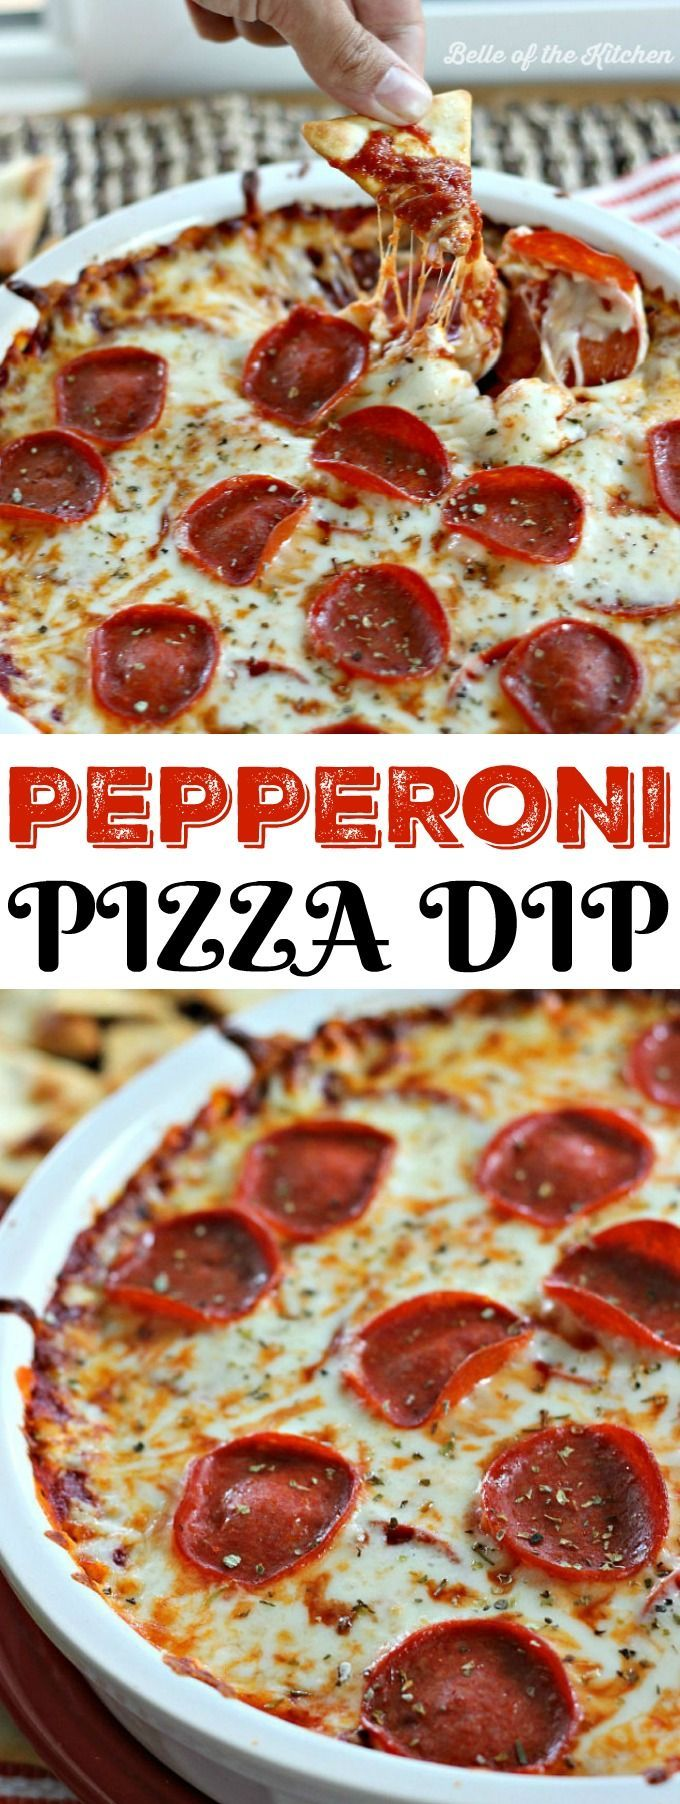 This Pepperoni Pizza Dip is such an easy and fun appetizer! If youve got 20 minutes and a few simple ingredients, then get ready